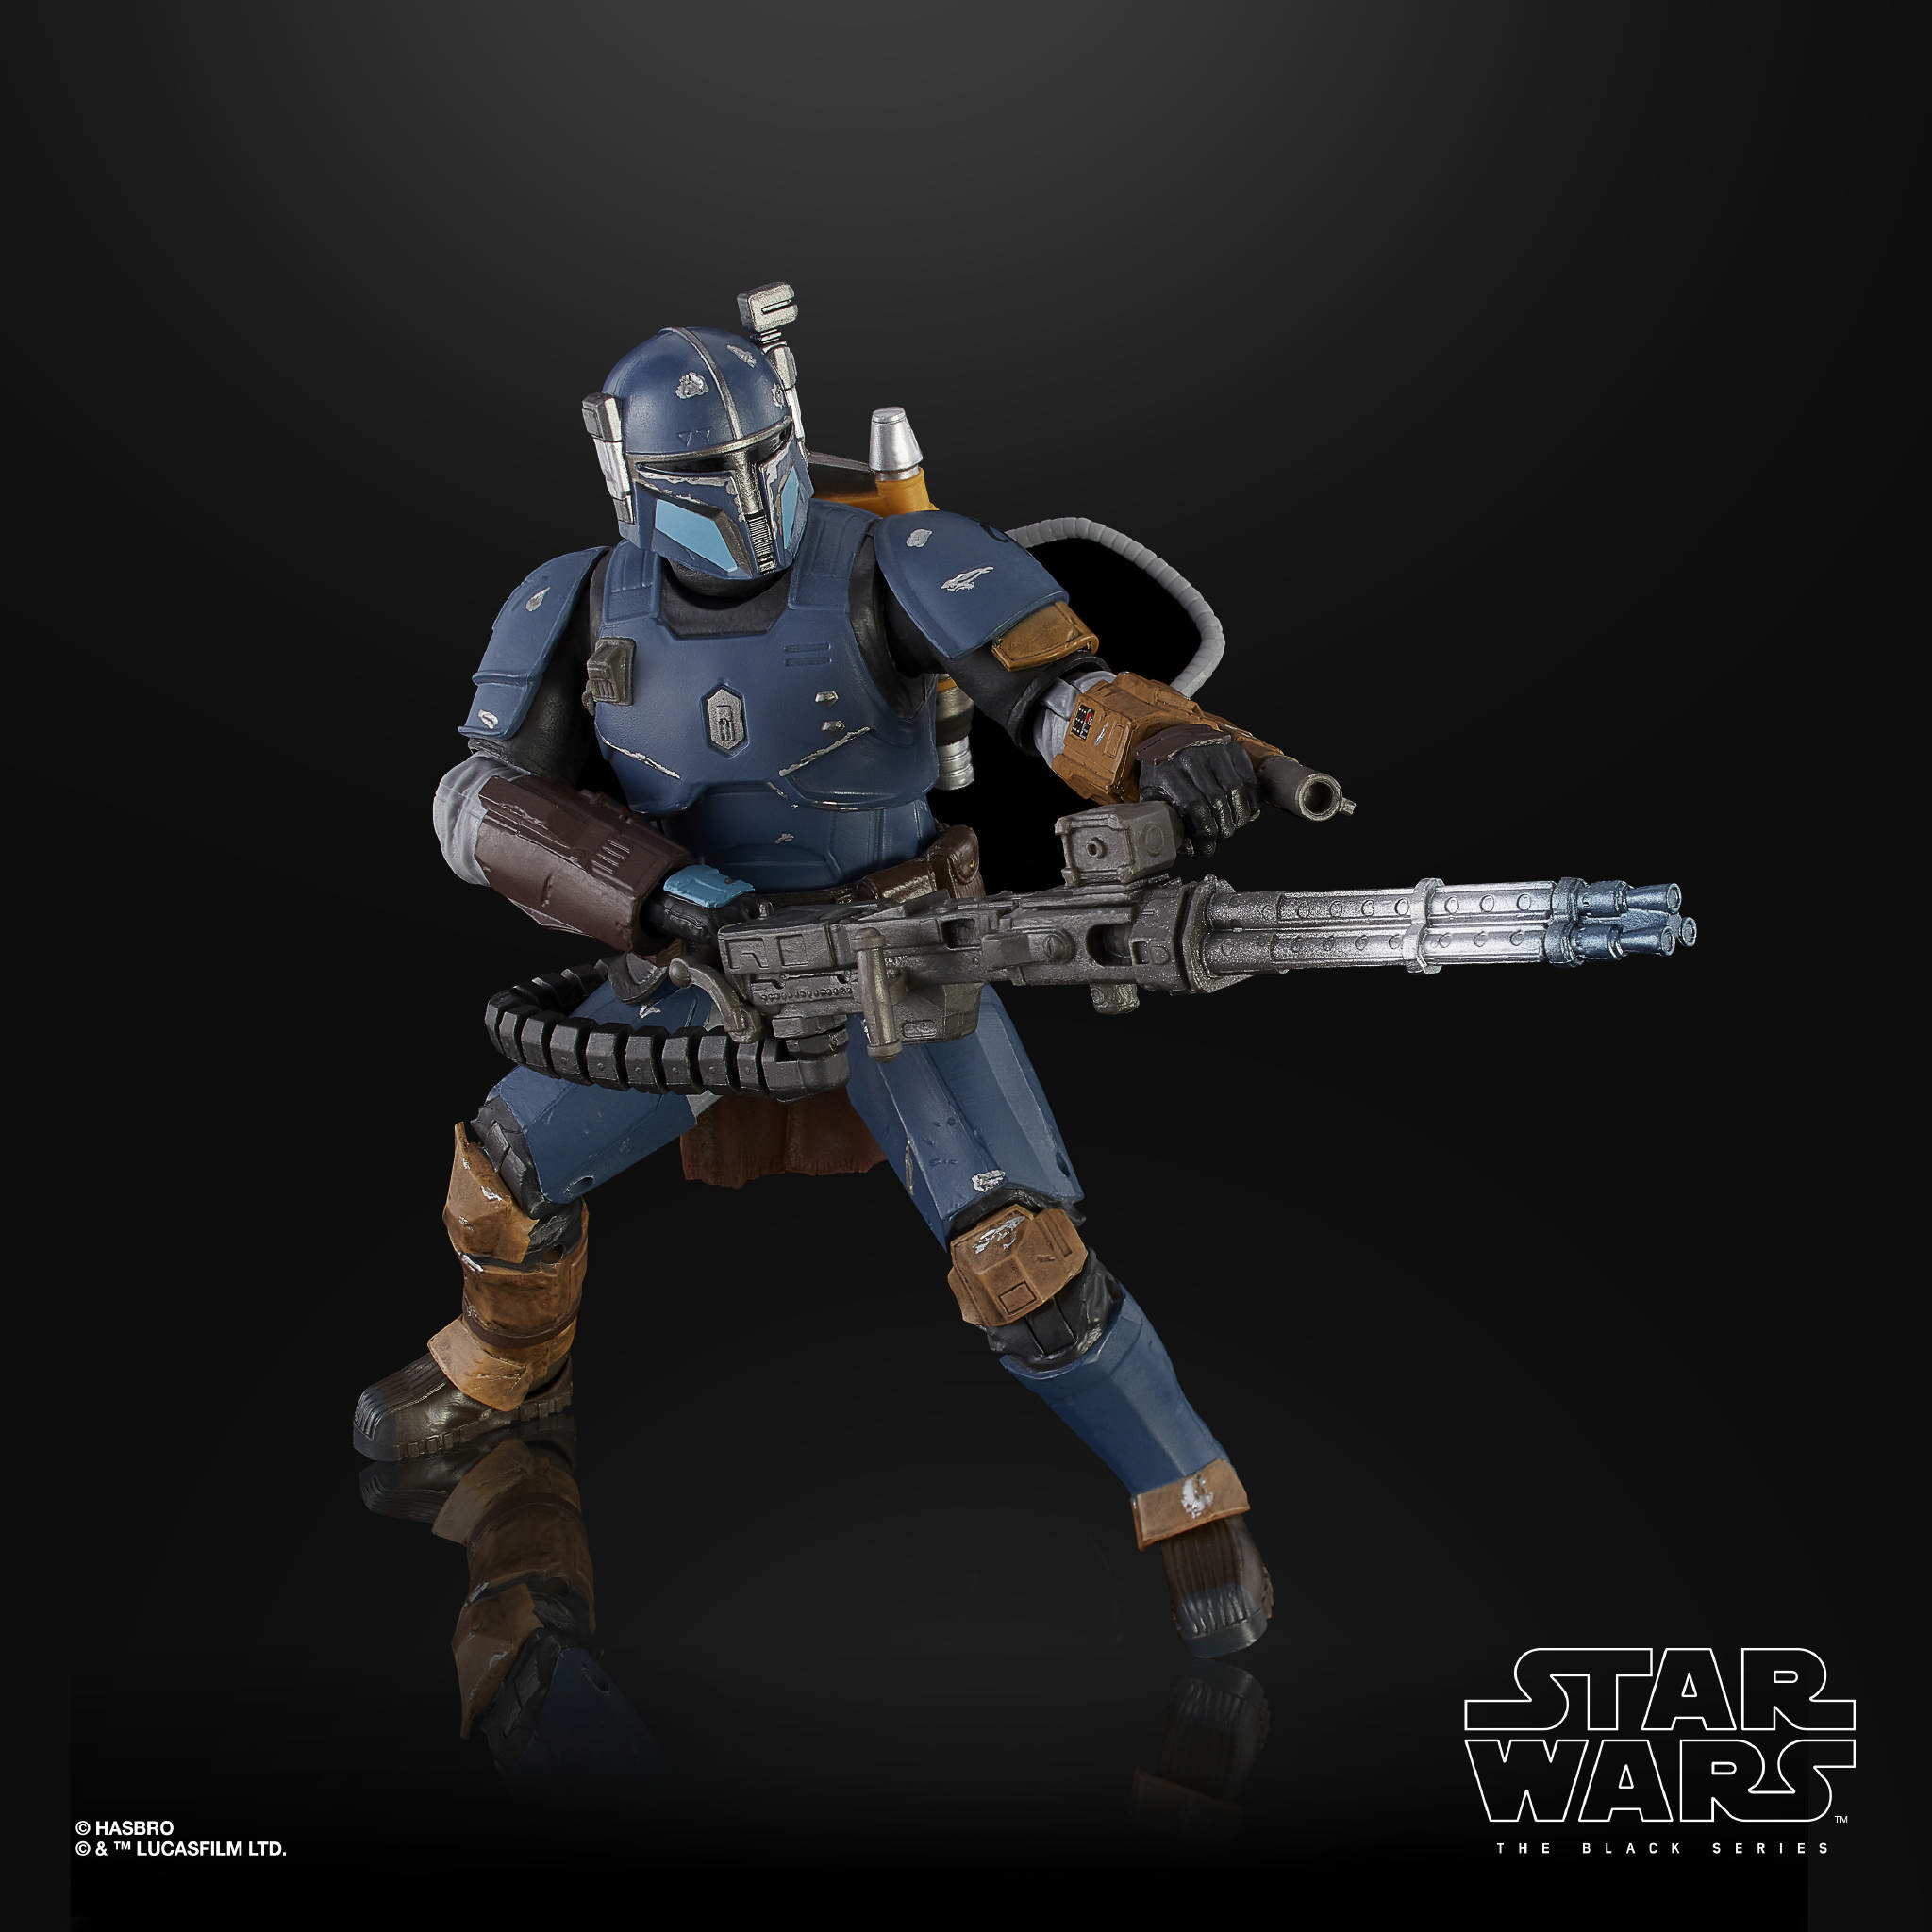 STAR WARS THE BLACK SERIES 6 INCH HEAVY INFANTRY MANDALORIAN Figure oop 3